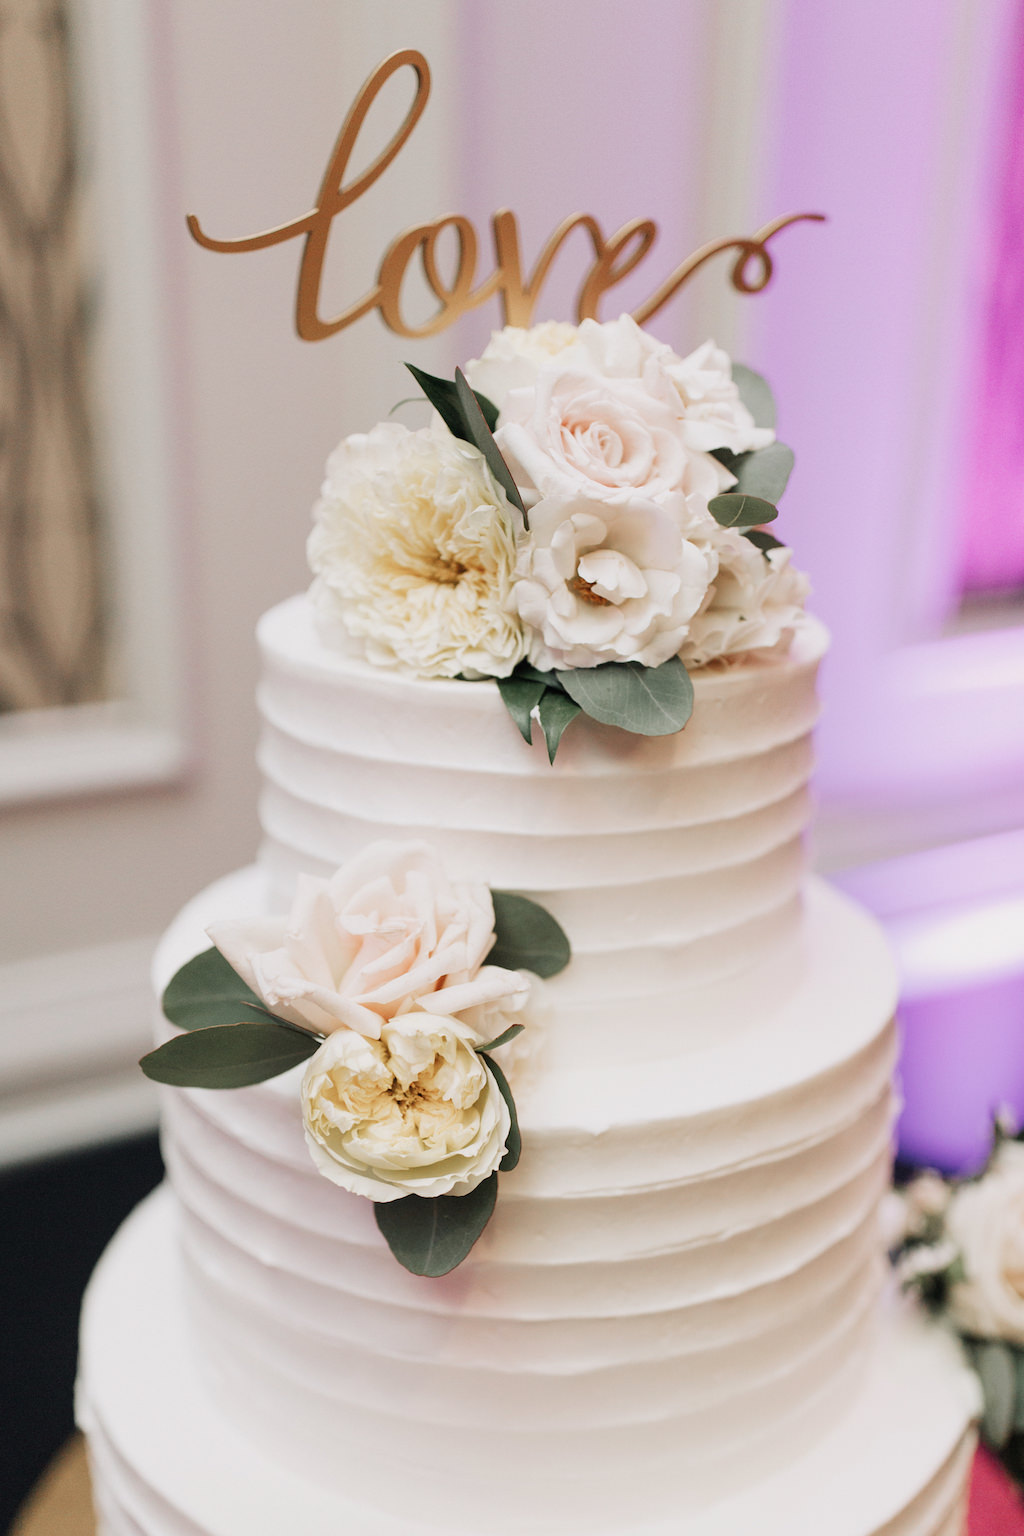 3 Tier White Buttercream Wedding Cake With Fresh Pastel Pink Flowers